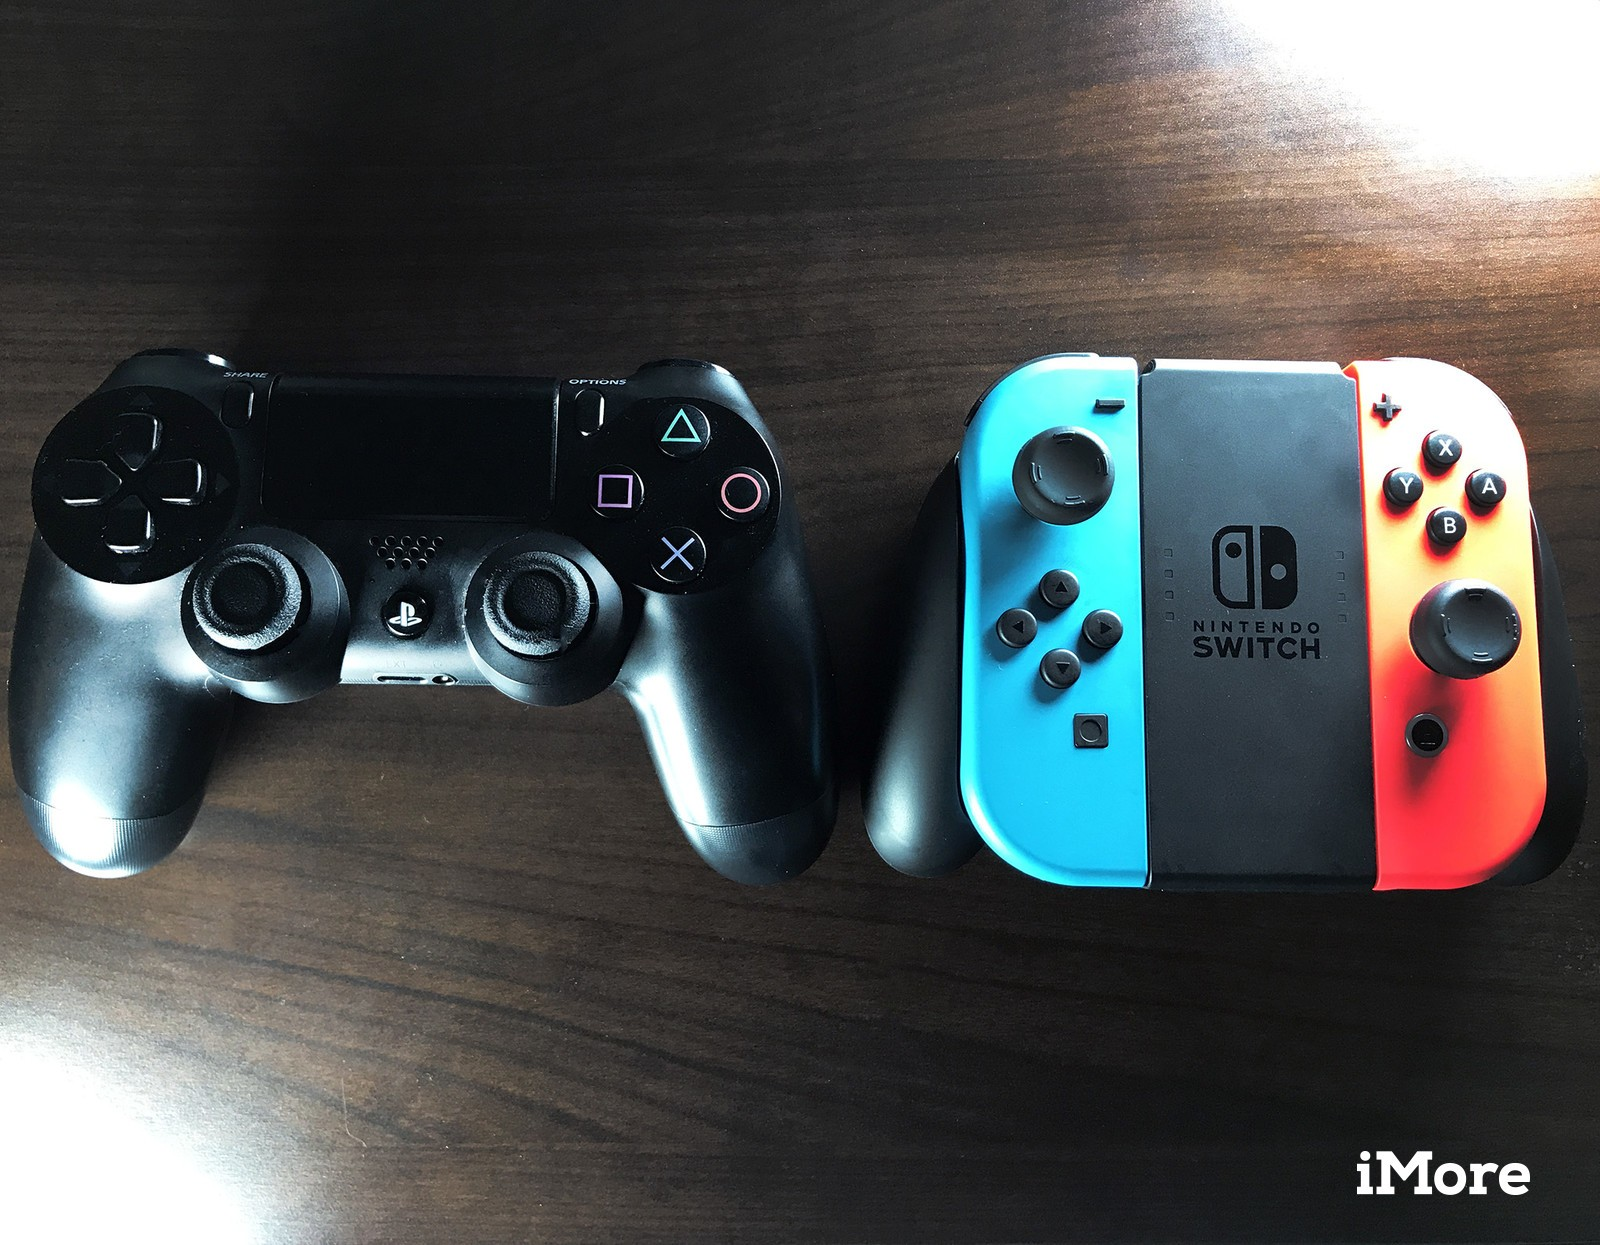 PlayStation controller vs. Nintendo Switch Joy-Con Grip